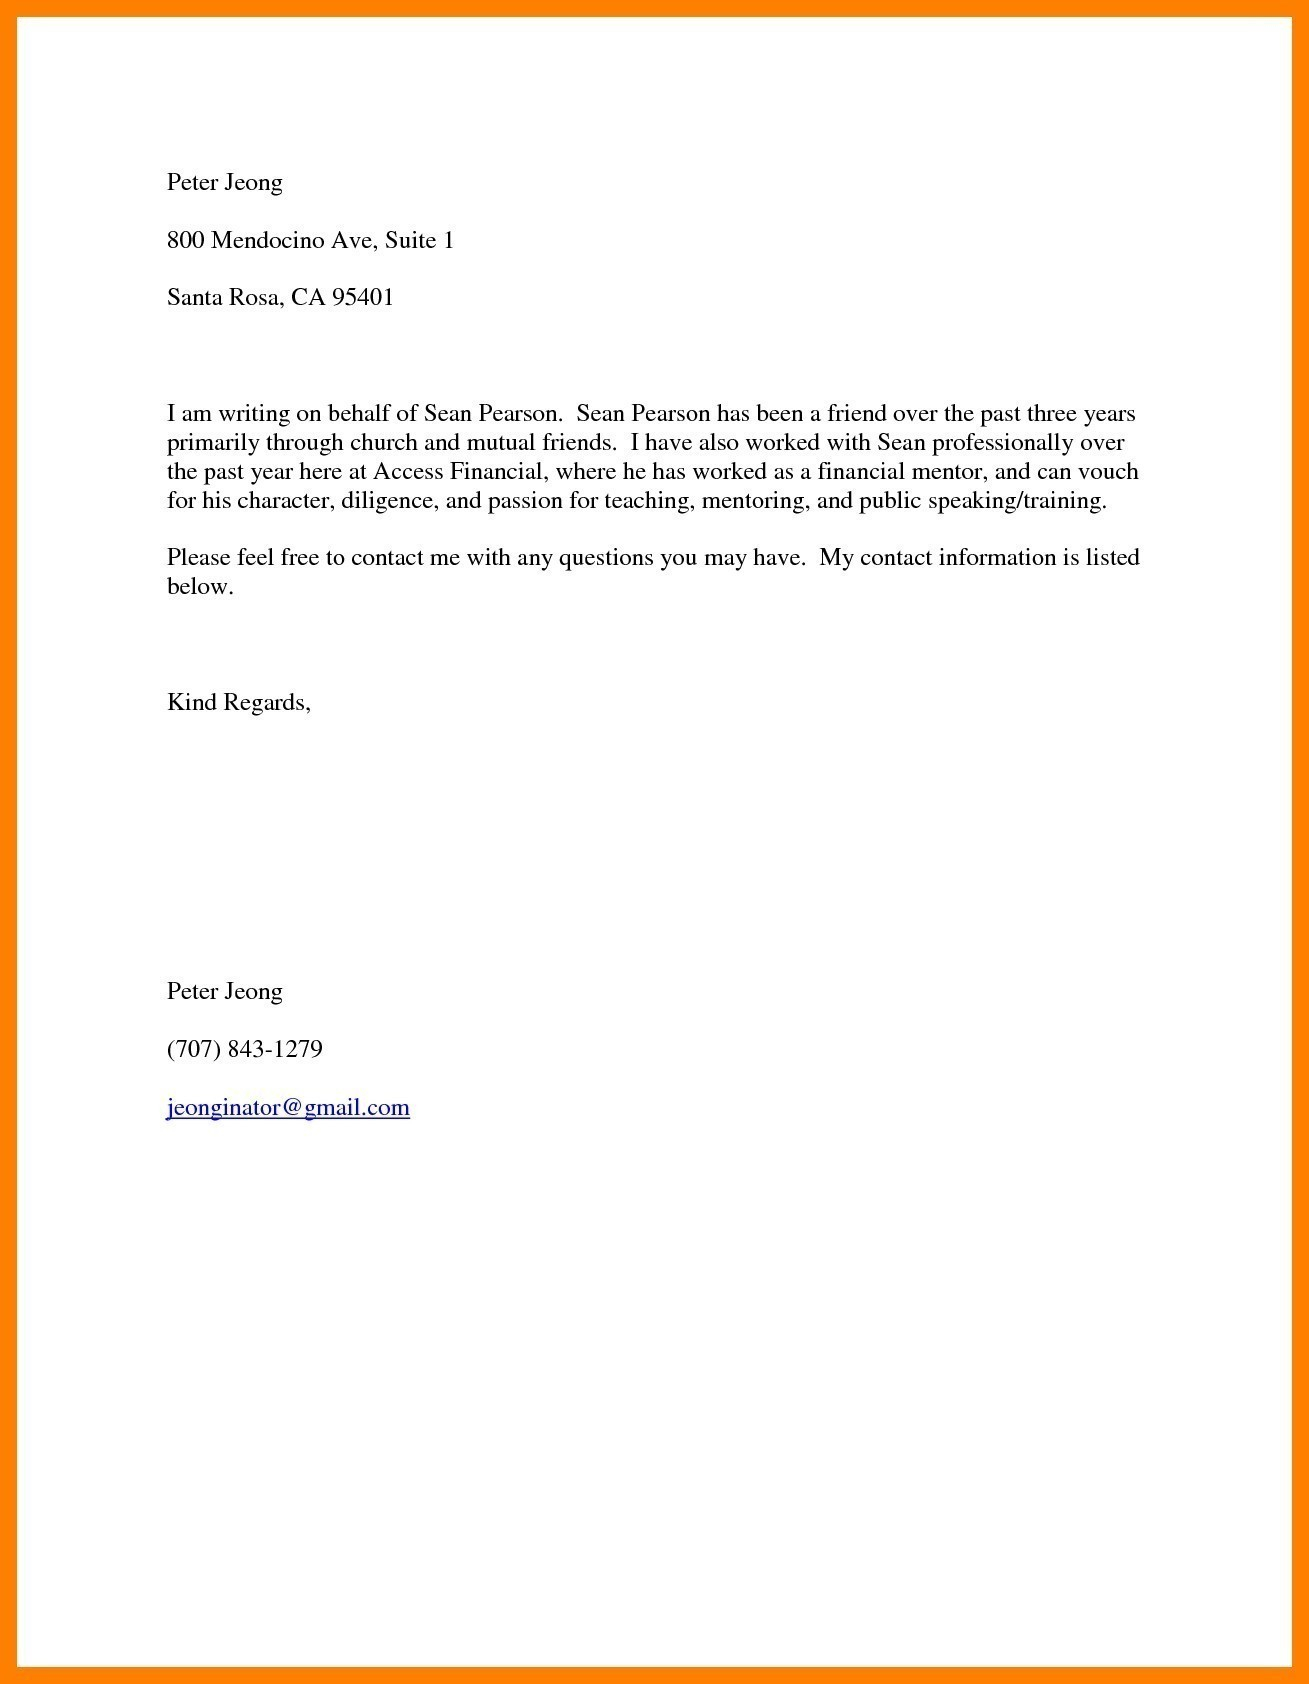 Letter Of Recommendation for A Friend Template - Template Certificate Good Moral Character New Sample Character